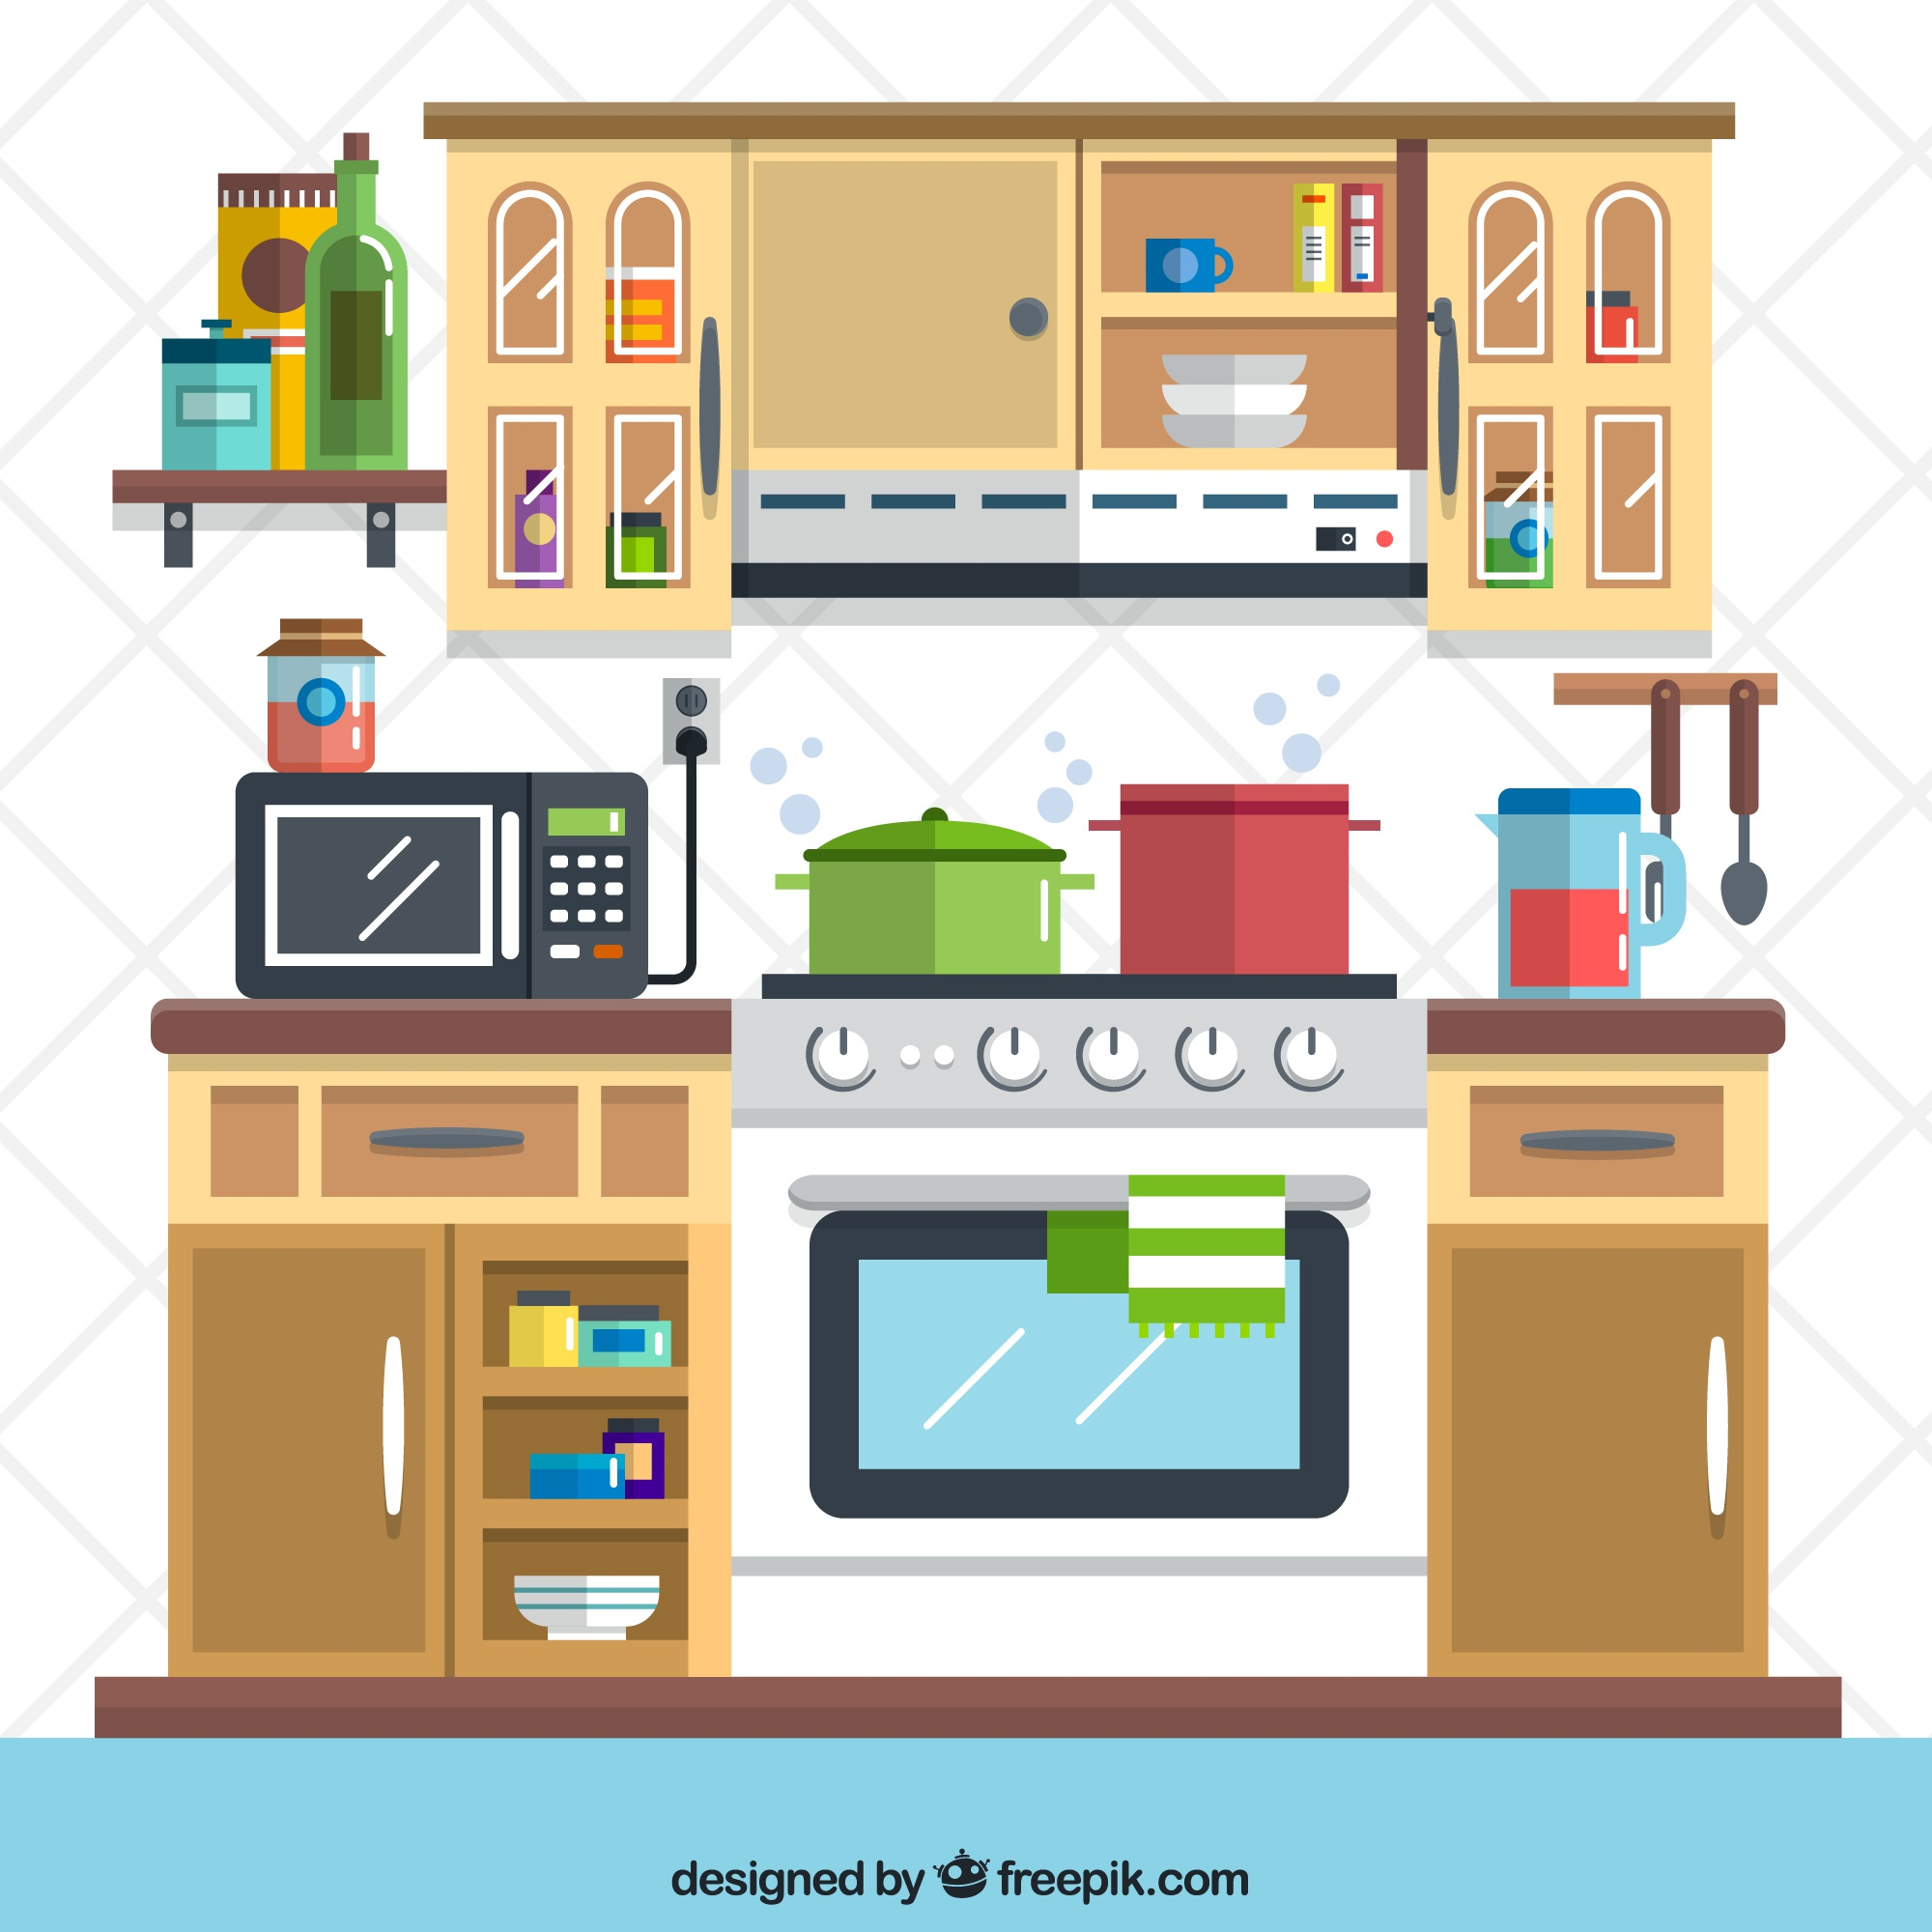 Flat kitchen illustration